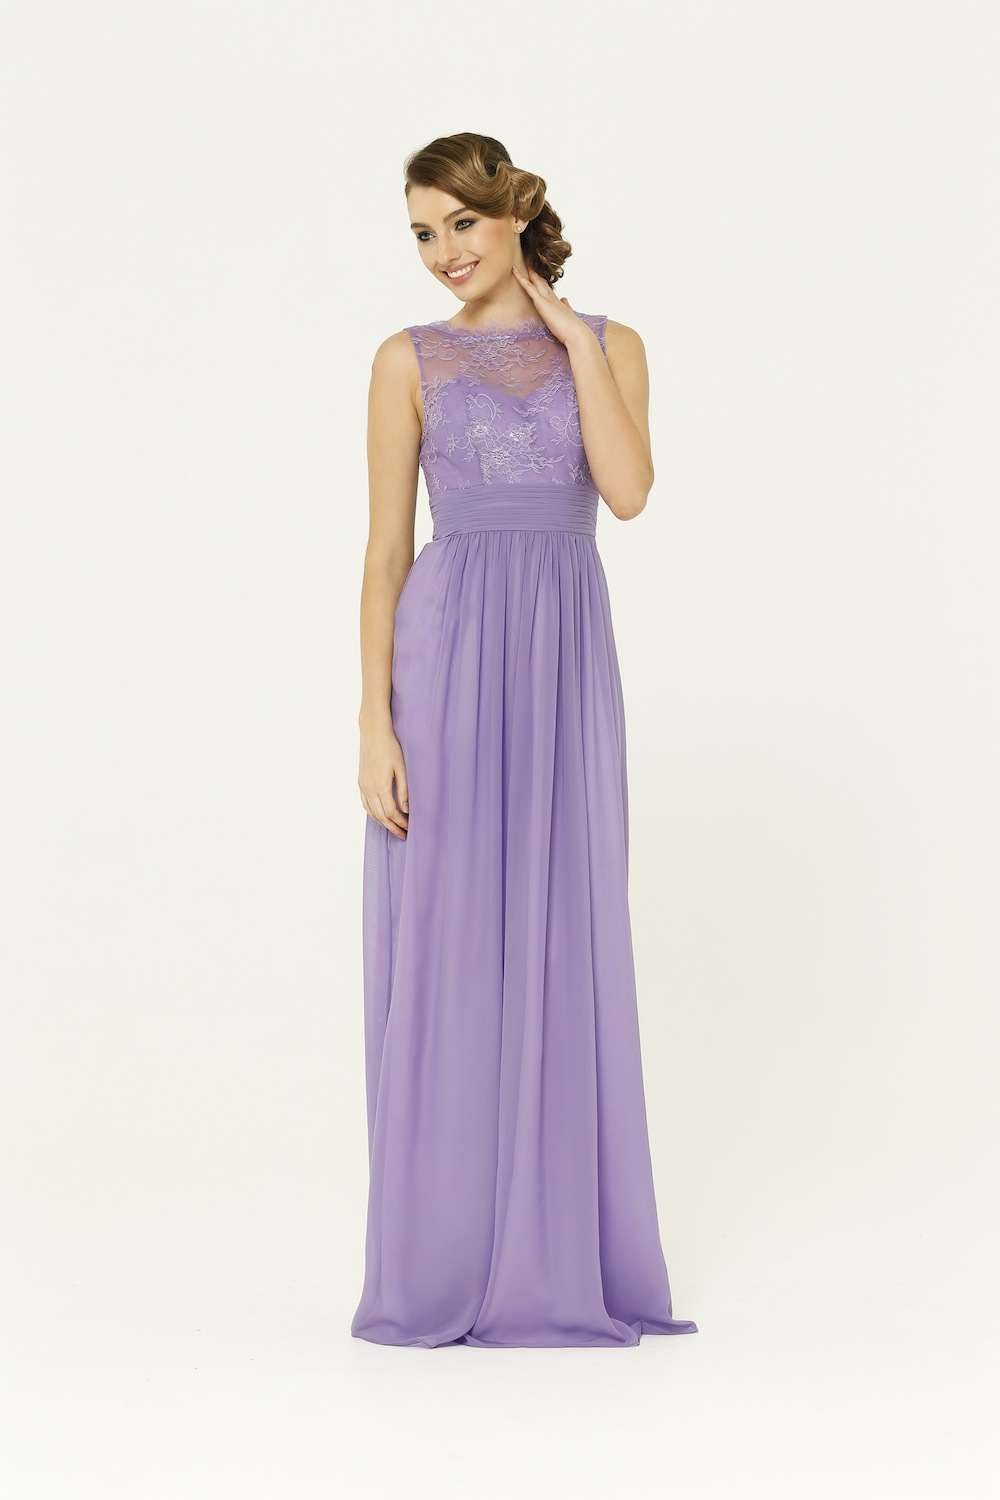 Charlotte Bridesmaid Dress - Sentani Boutique